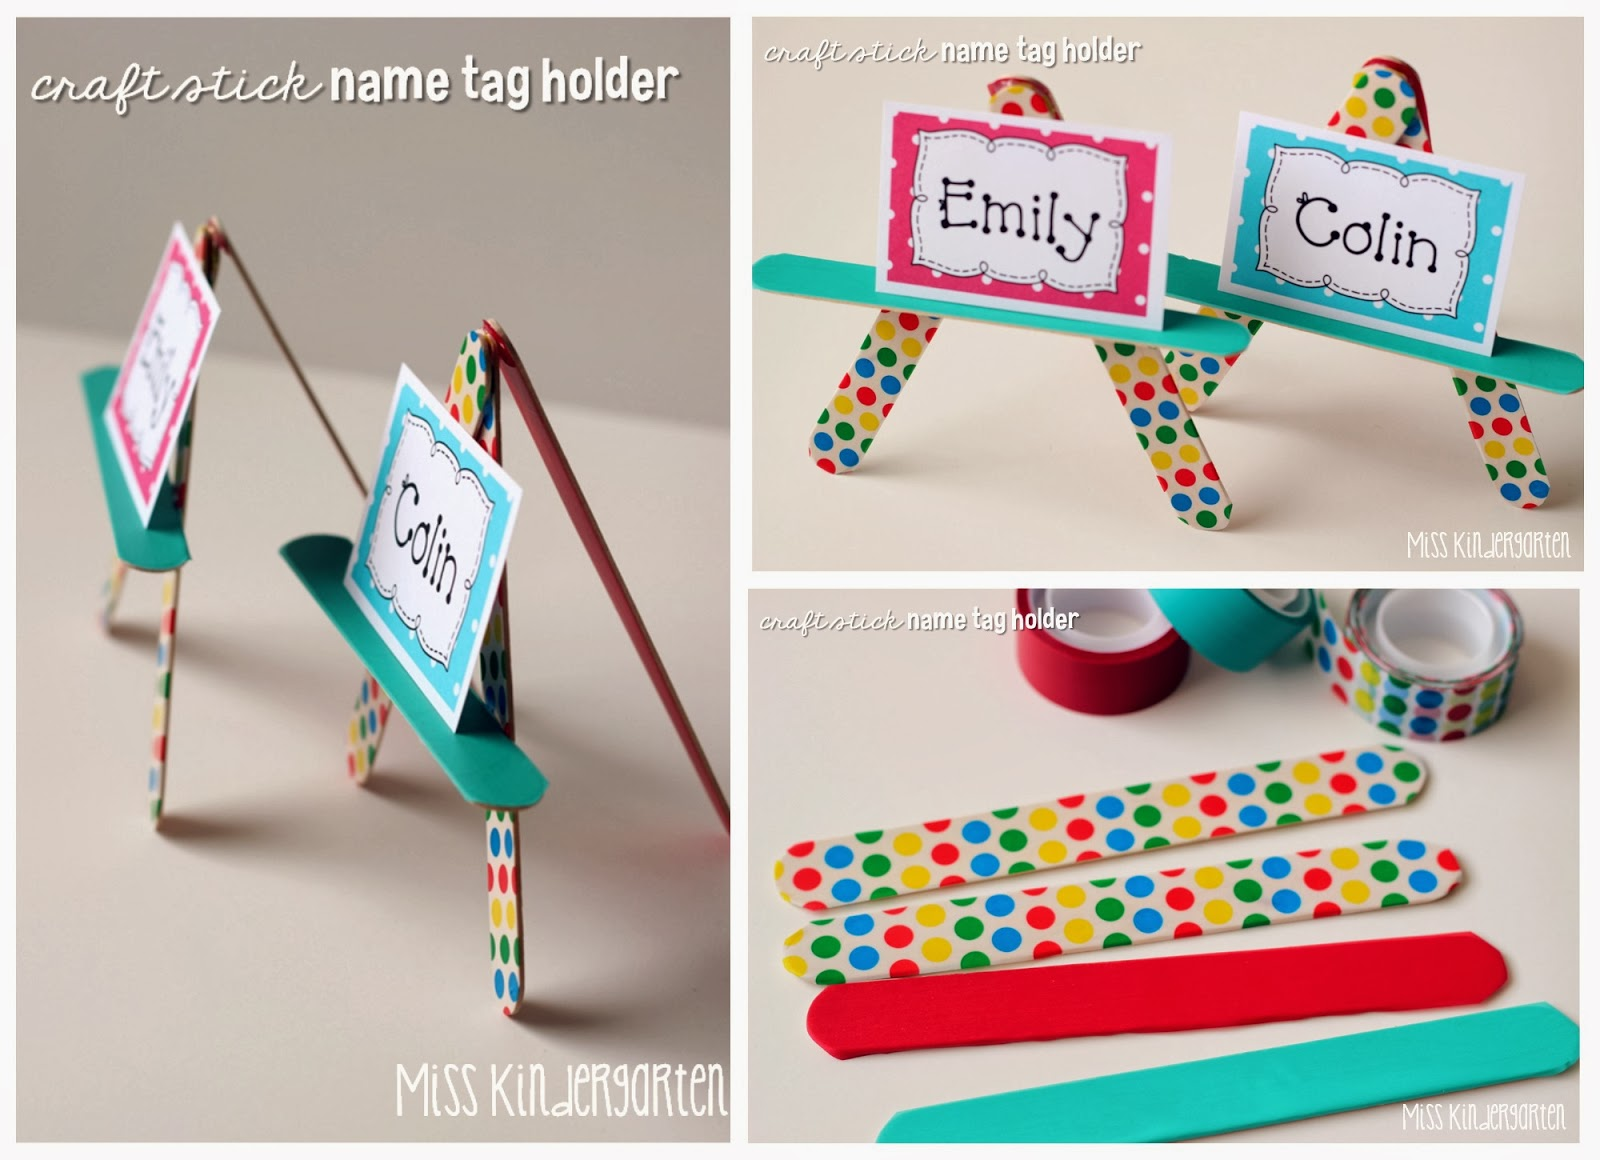 scotchexp craft stick name tag holders - Name Tag Design Ideas